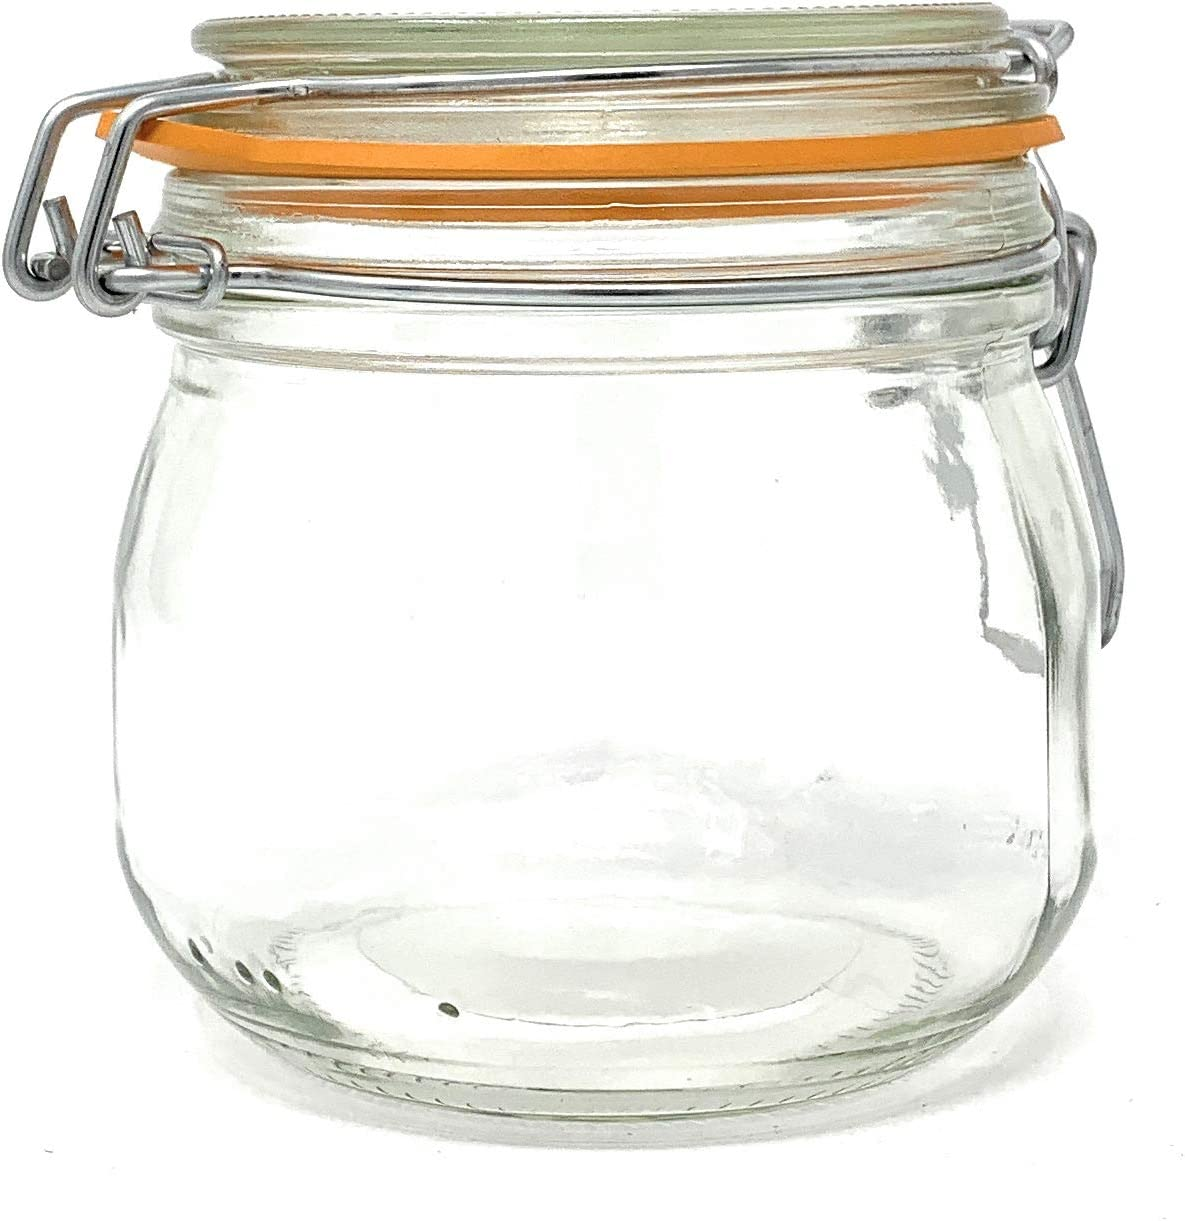 (2 Pack) 16 oz, Pint, 500 ml, Glass French Canning Jars with Stainless Steel Wire Bail. Airtight Jar. Hinged lids. Great for Canning, Food Storage, Spices, Herbs, Candles, Gifts, Candy and Bath Salts